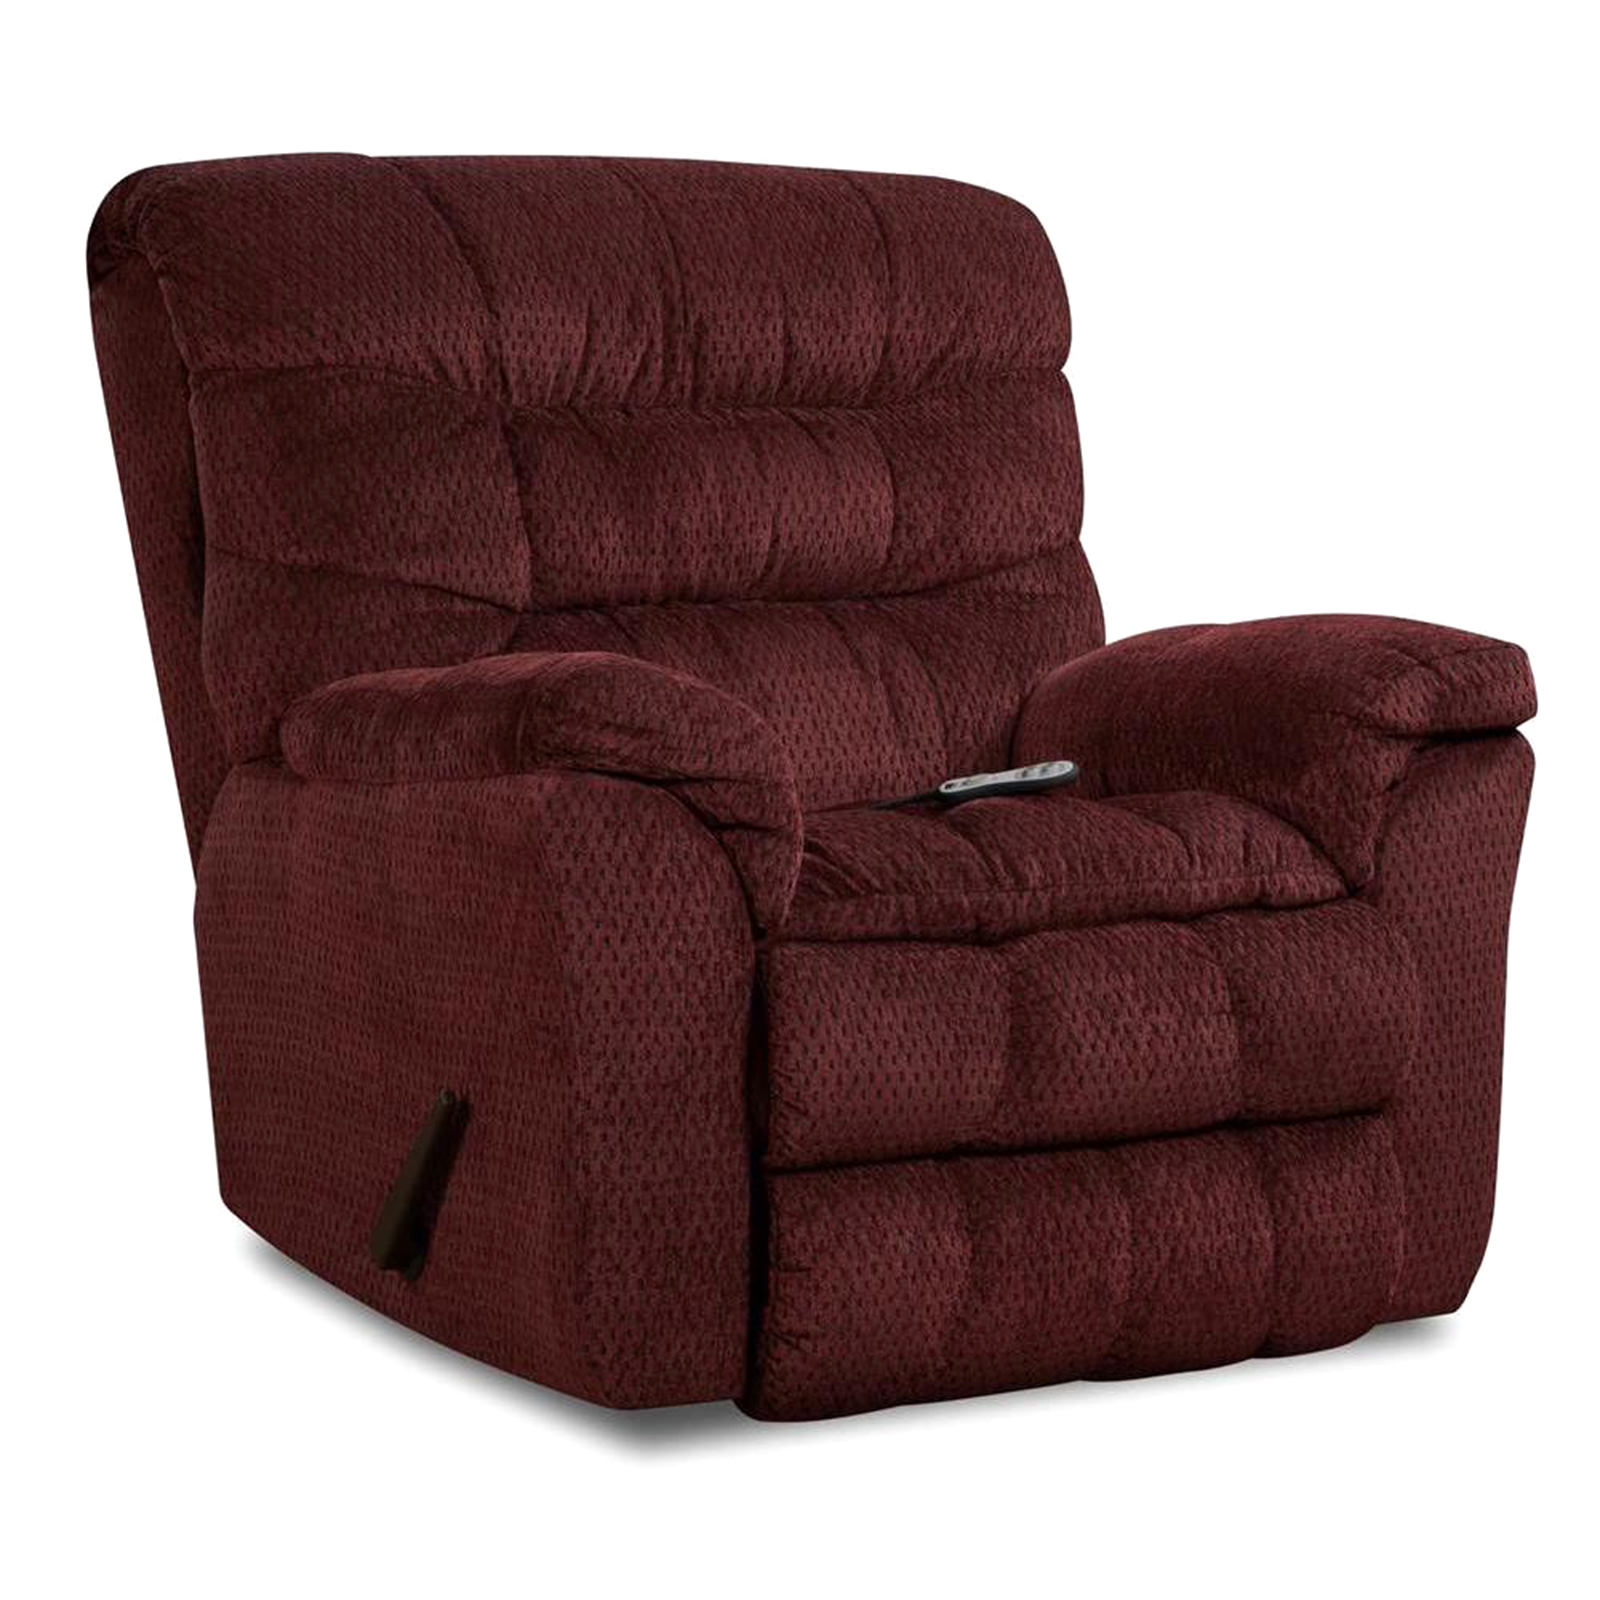 sears recliner chairs folding foam bed chair simmons upholstery 41 rocker marketplace heat and massage wine